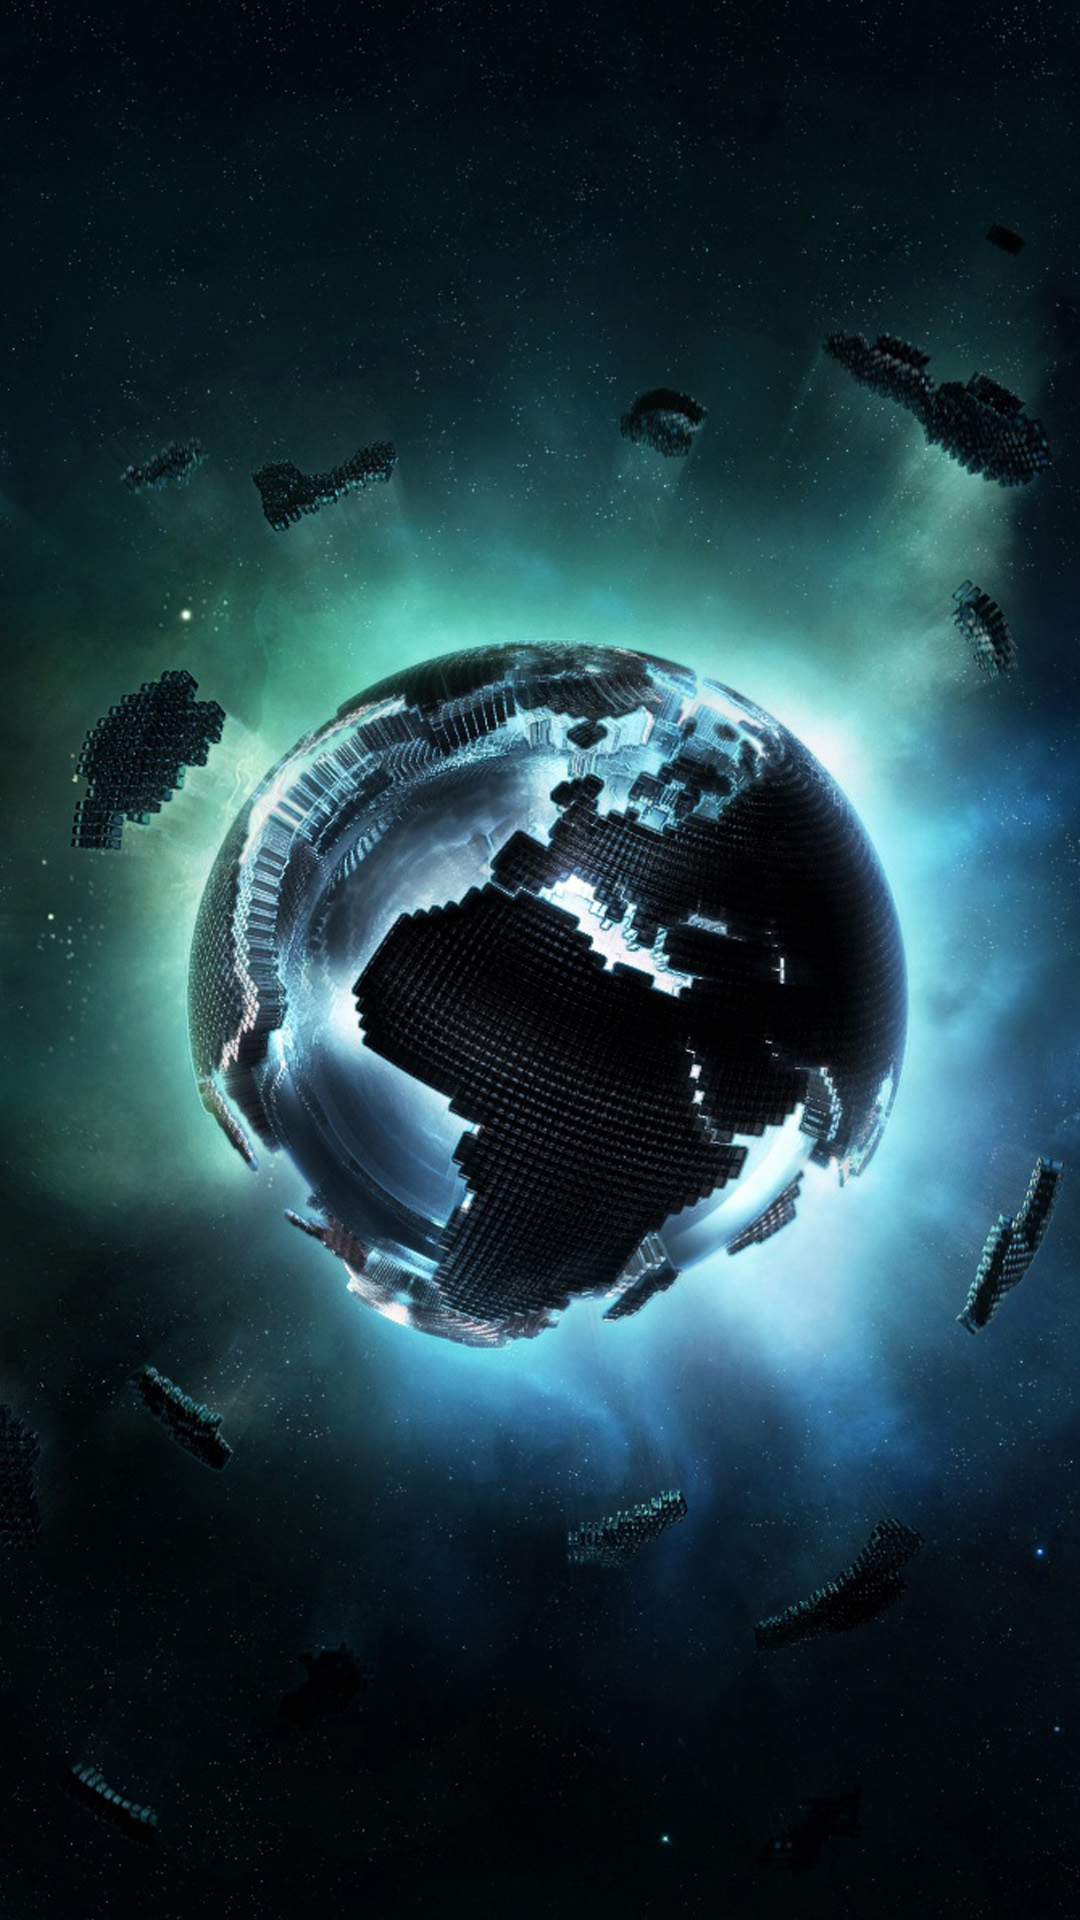 3d Wallpaper For Htc One M8 3d Pixel Earth Best Htc One Wallpapers Free And Easy To